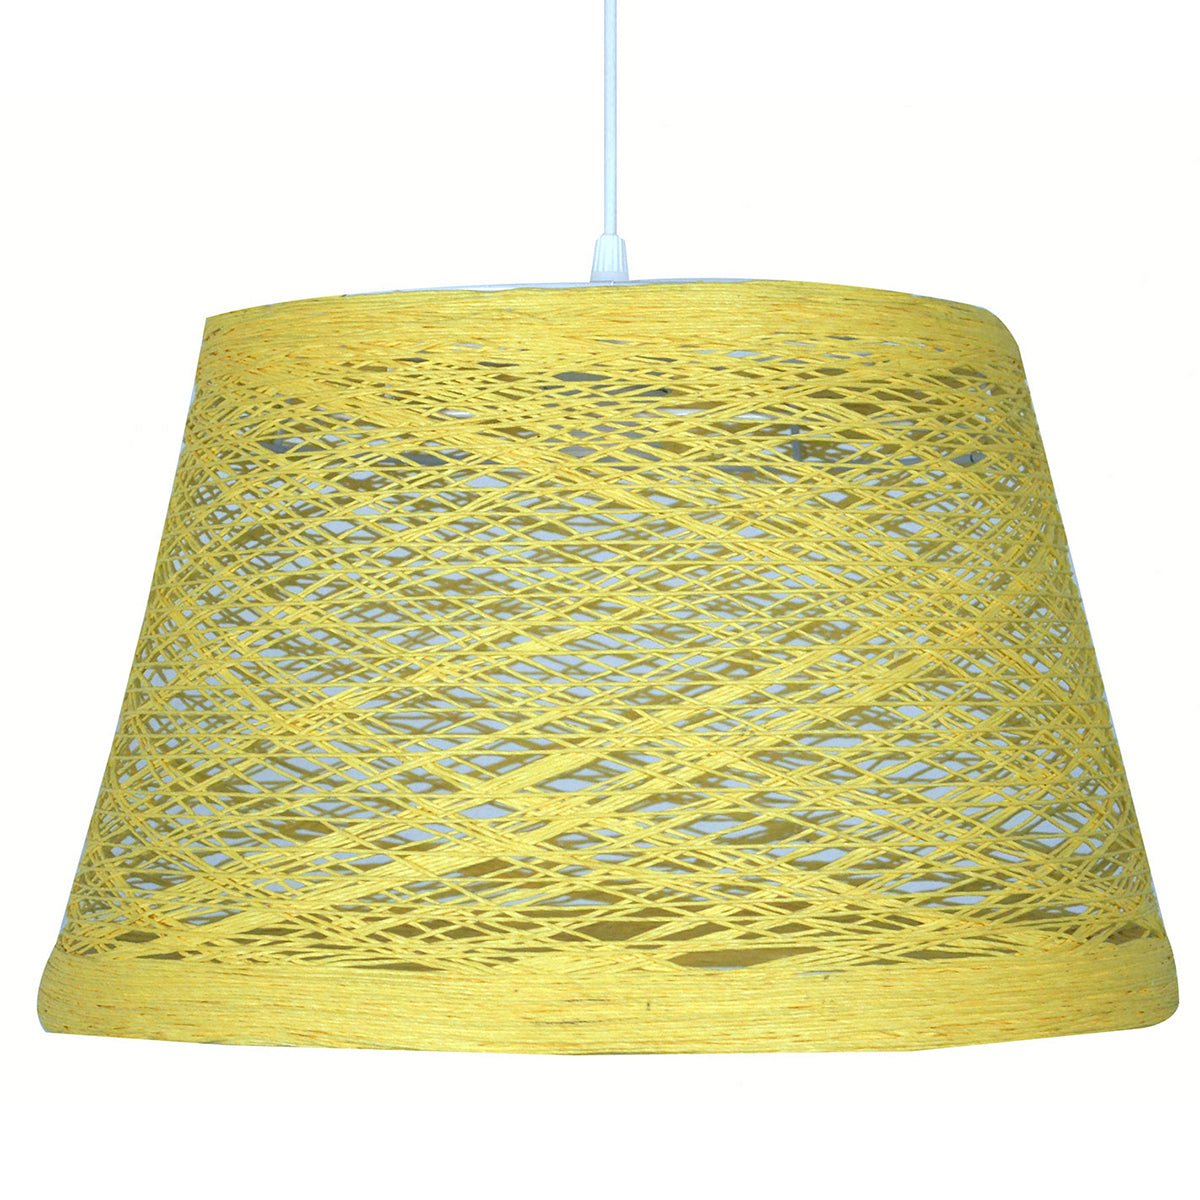 suspension abat-jour en sisal jaune